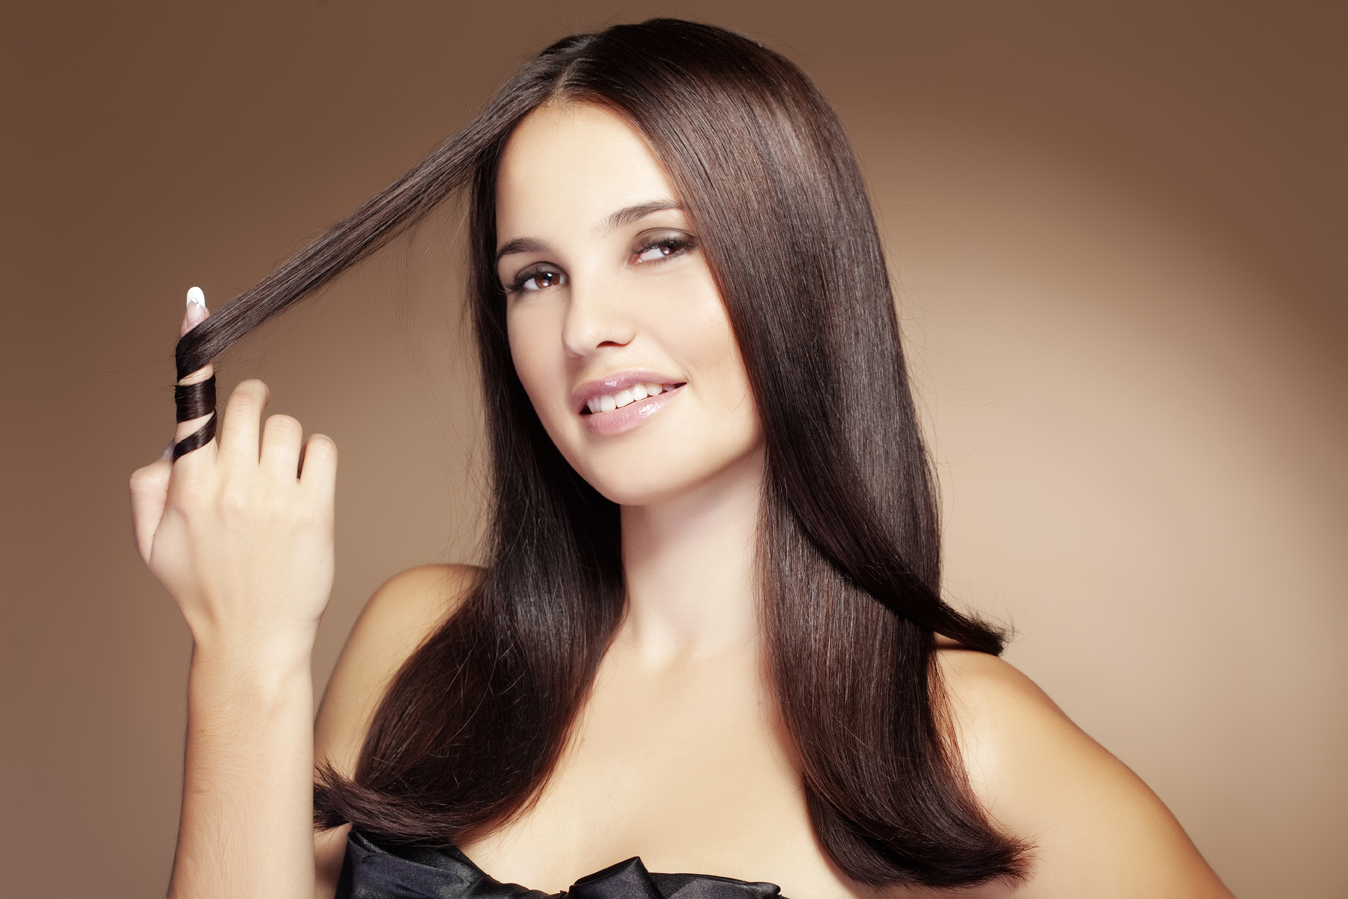 Hair Transplant - A Good Option For Women Suffering From Hair Loss!